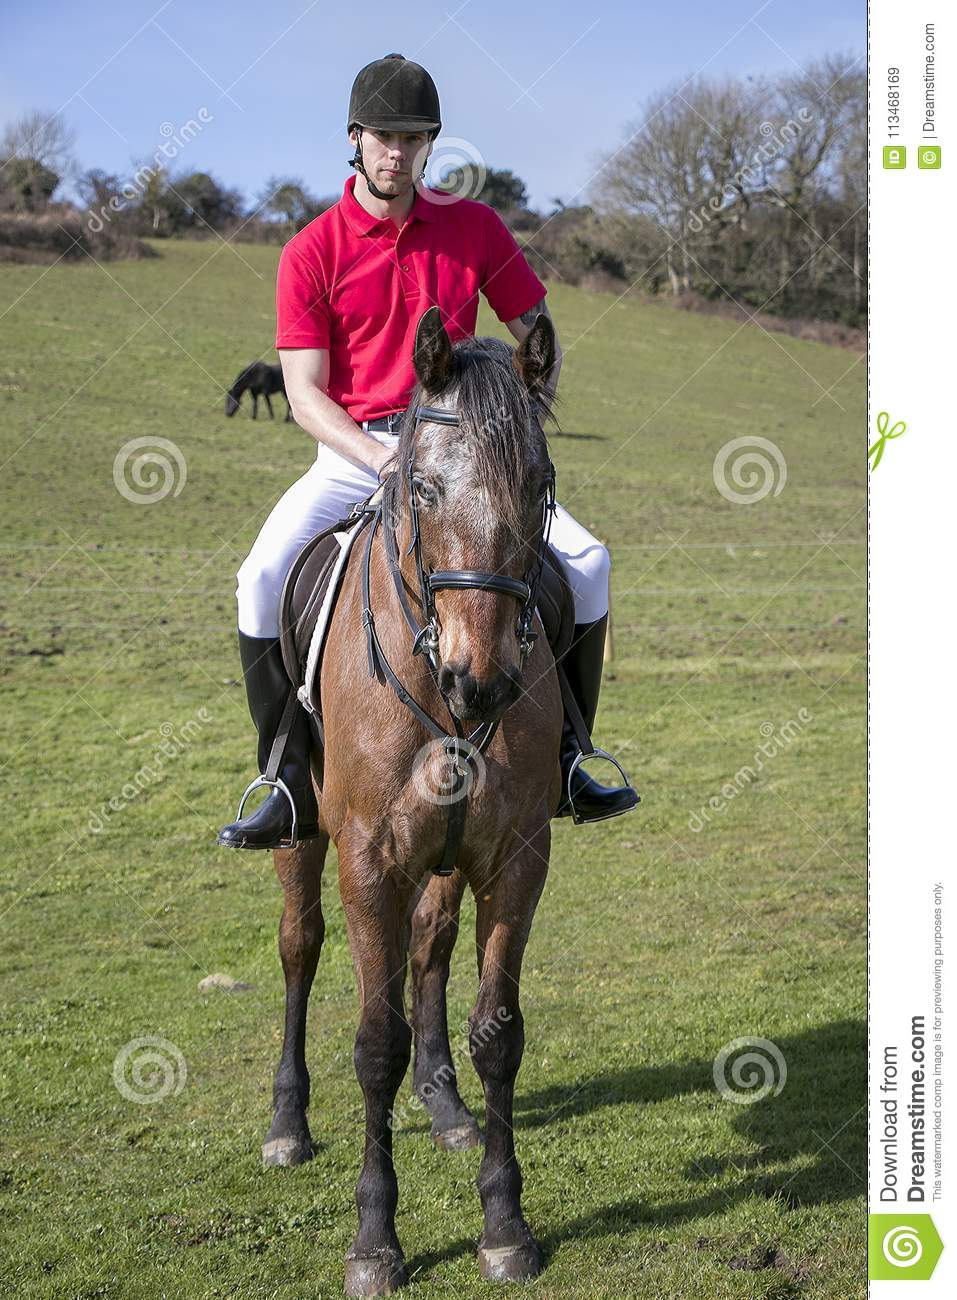 Handsome Male Horse Rider On Horseback With White Breeches Black Boots And Red Polo Shirt In Green Field With Horses In Distance Stock Image Image Of Hilltop Horseback 113468169